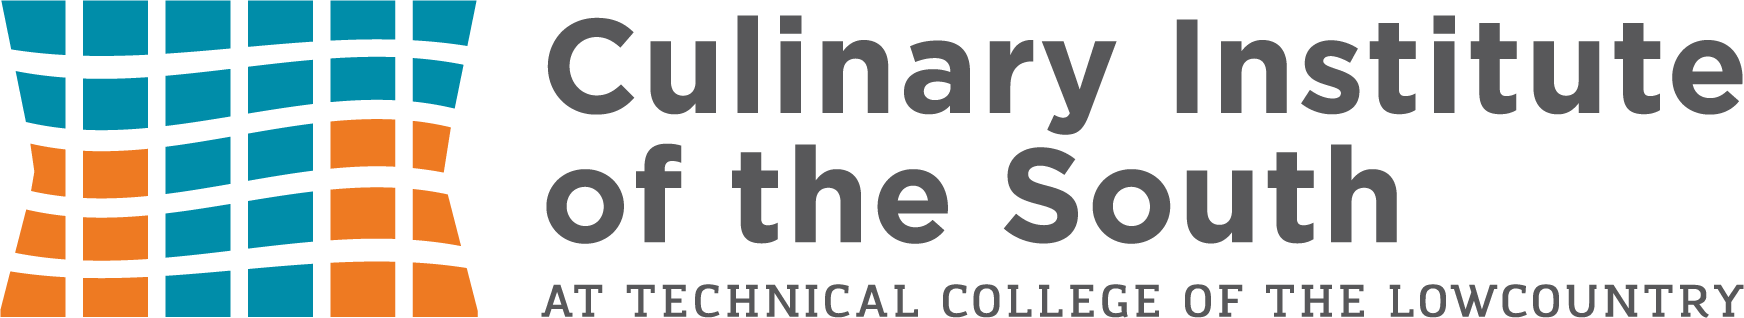 Culinary Institute of the South horizontal logo